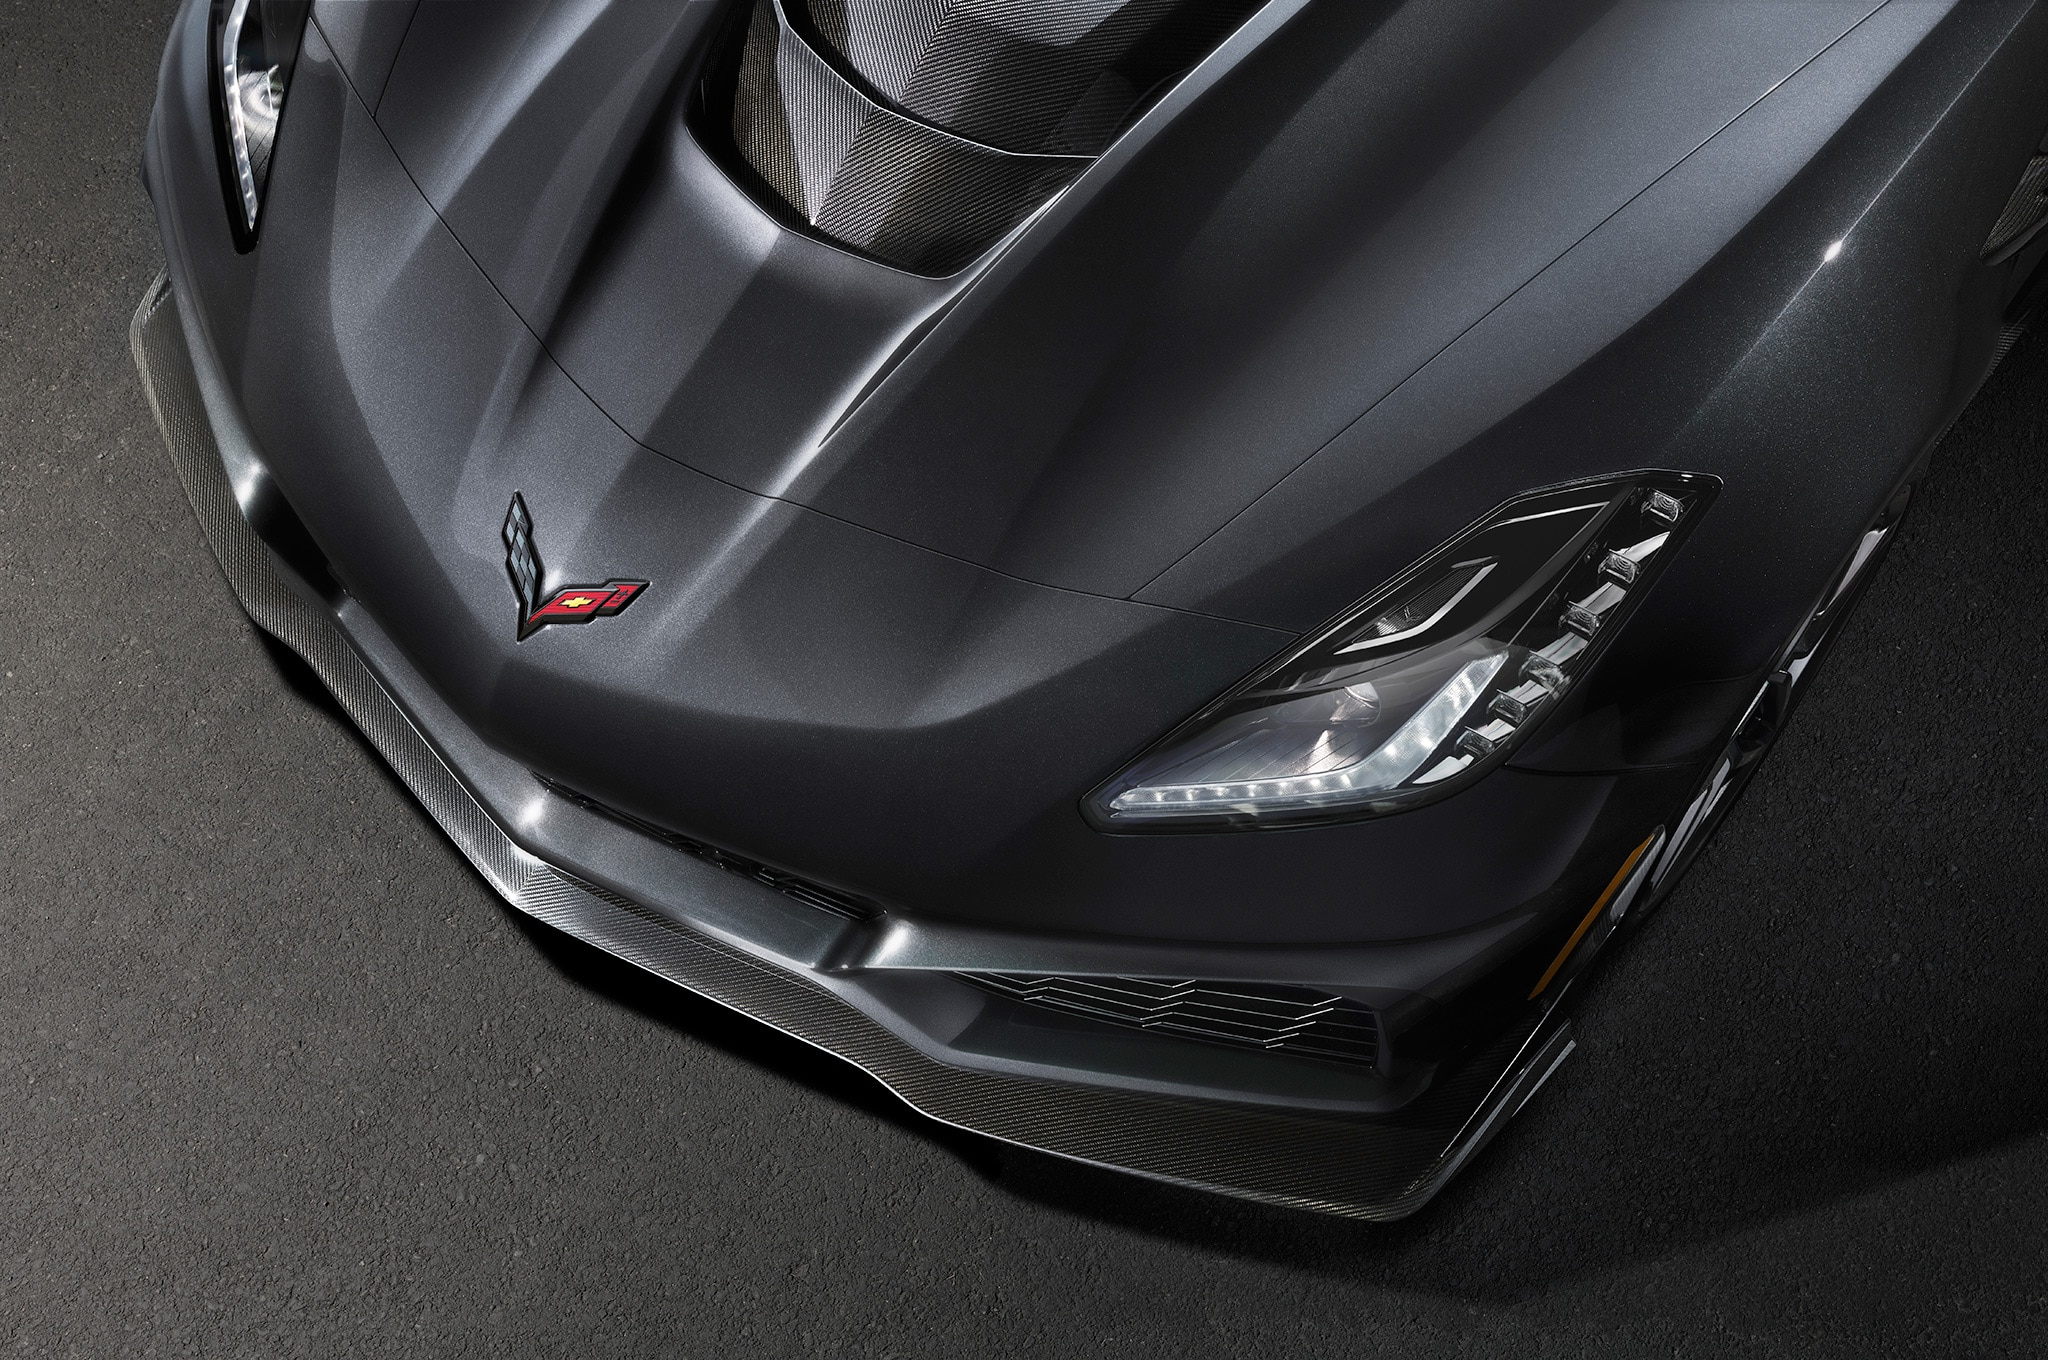 755-Horsepower 2019 Chevy Corvette ZR1 is the Fastest, Most Powerful ...